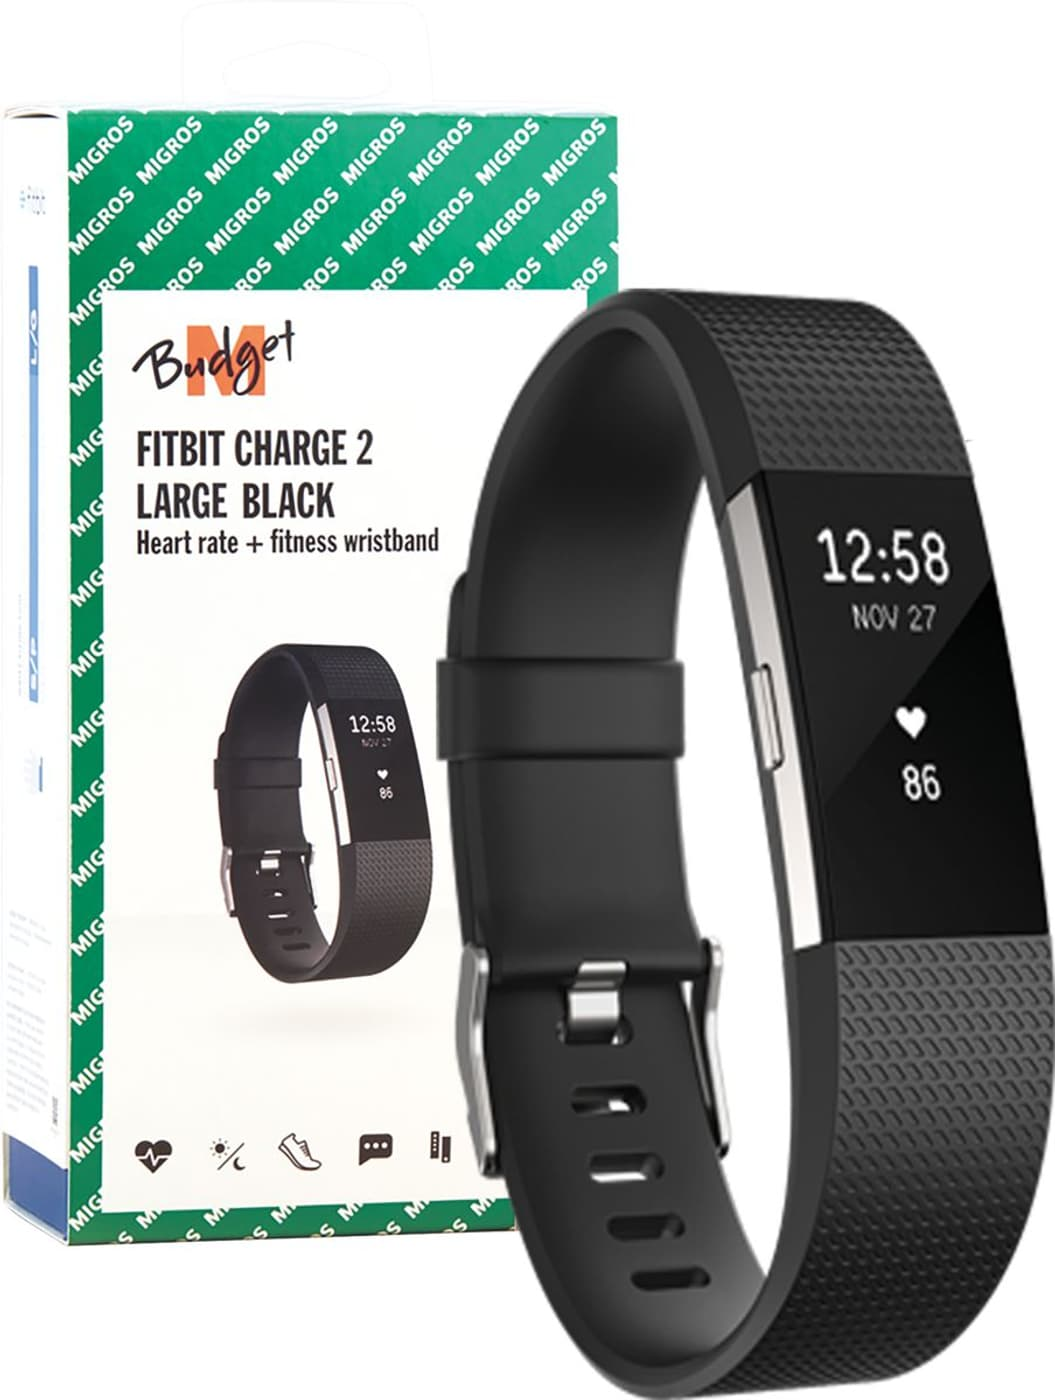 M-Budget Fitbit Charge 2 Black Large Activity Tracker